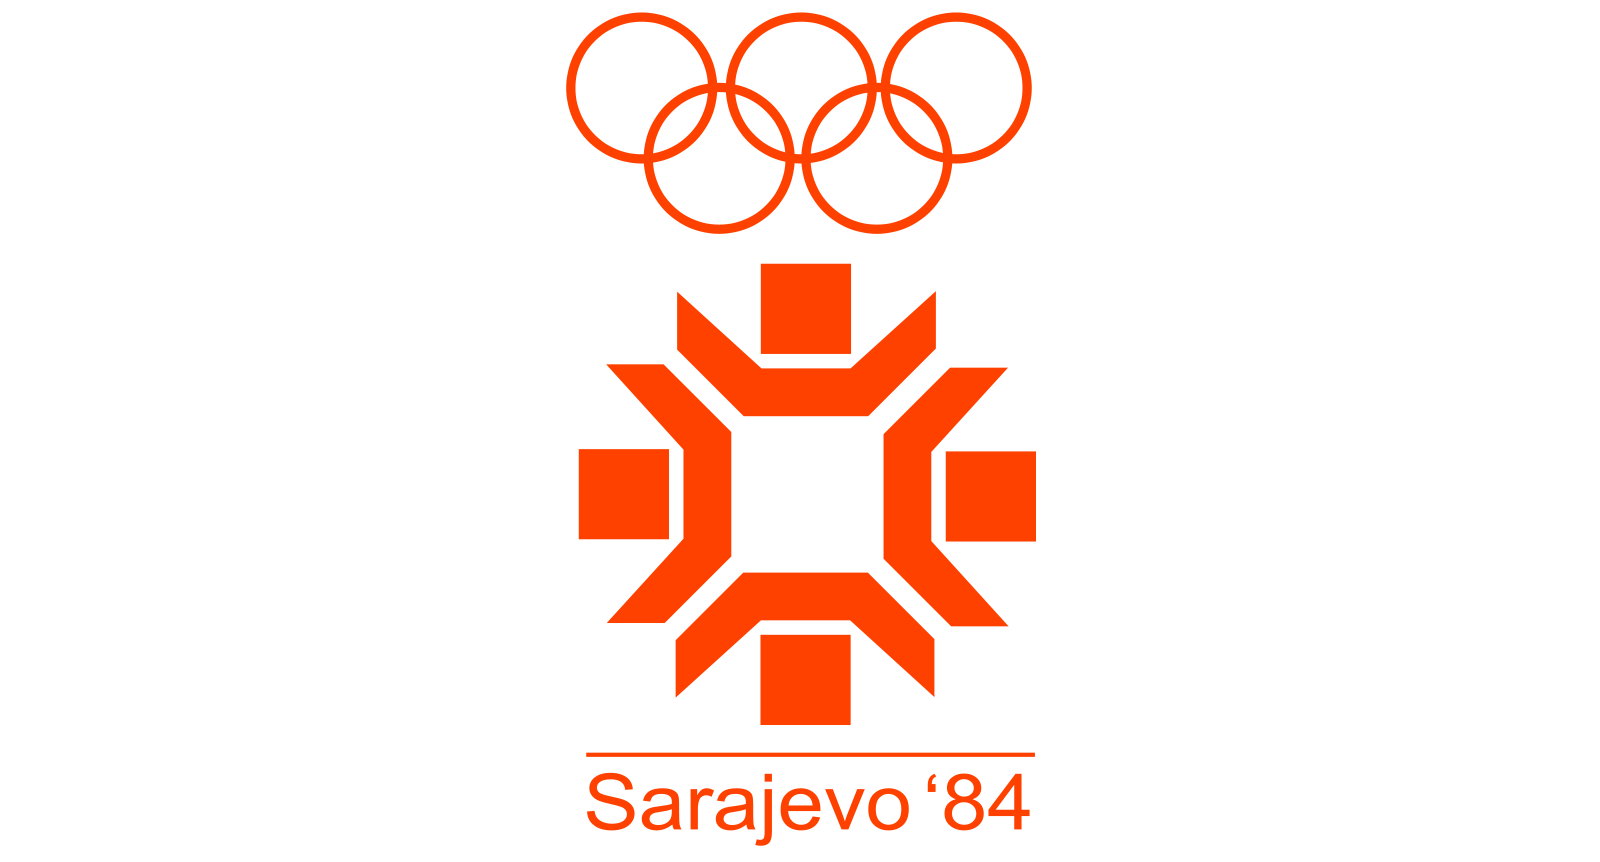 45 Olympic Logos And Symbols From 1924 To 2022 冬季オリンピック